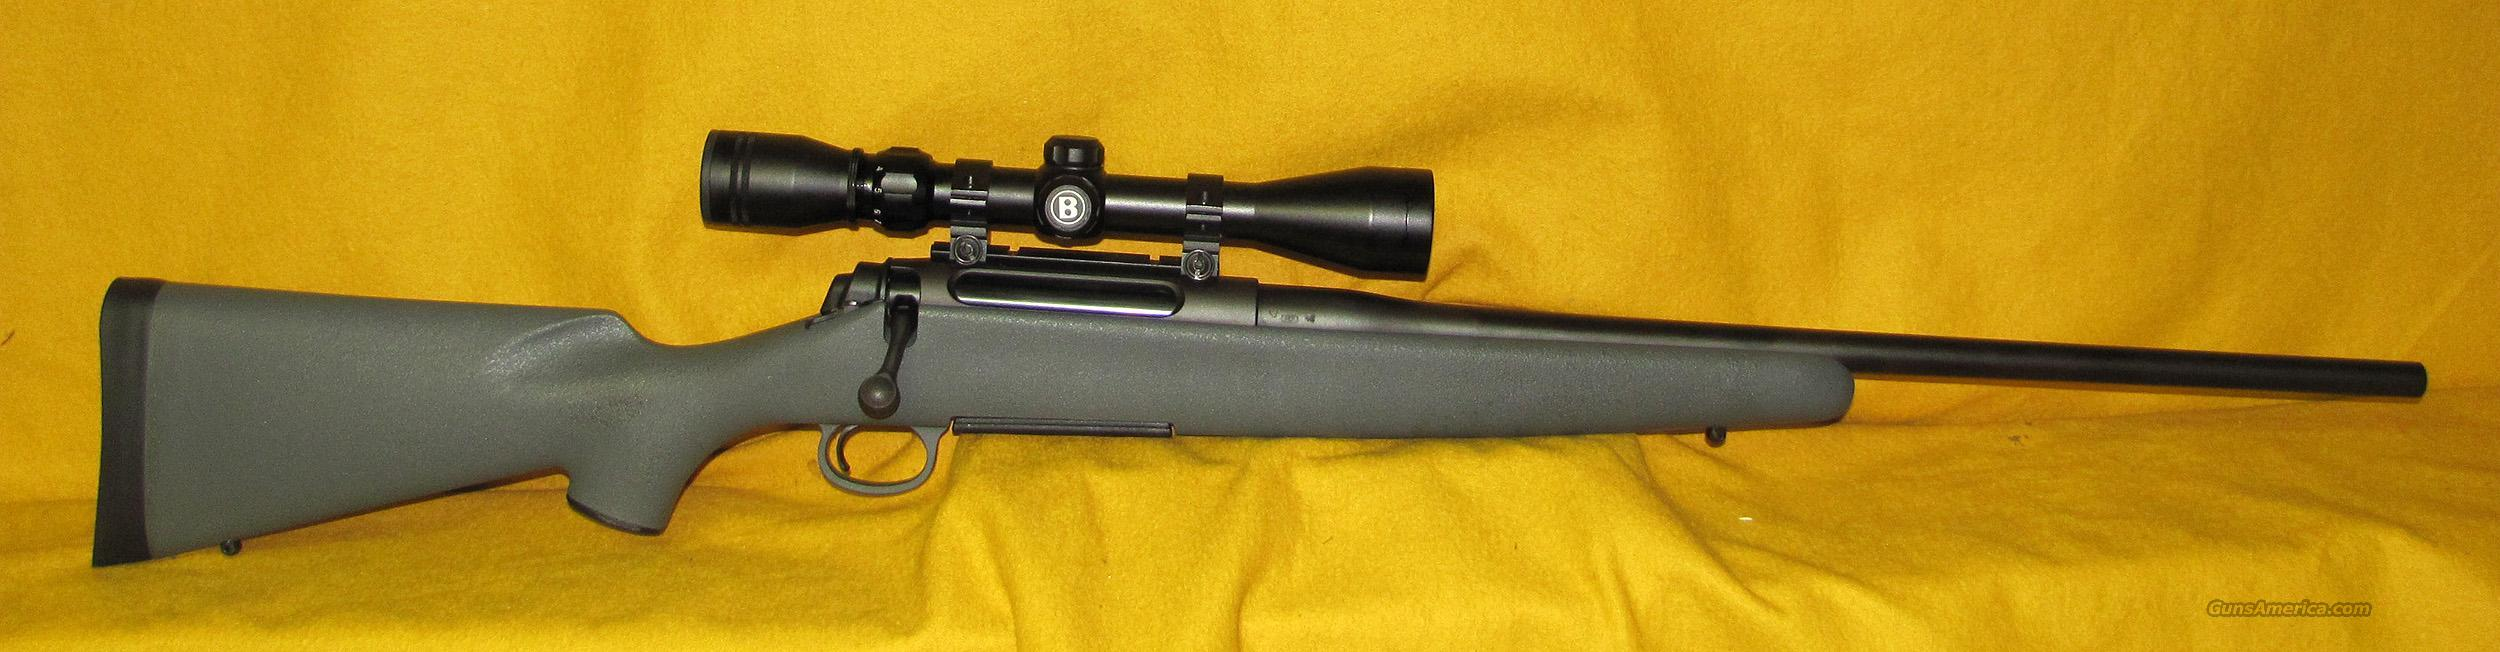 REMINGTON 710  Guns > Rifles > Remington Rifles - Modern > Other